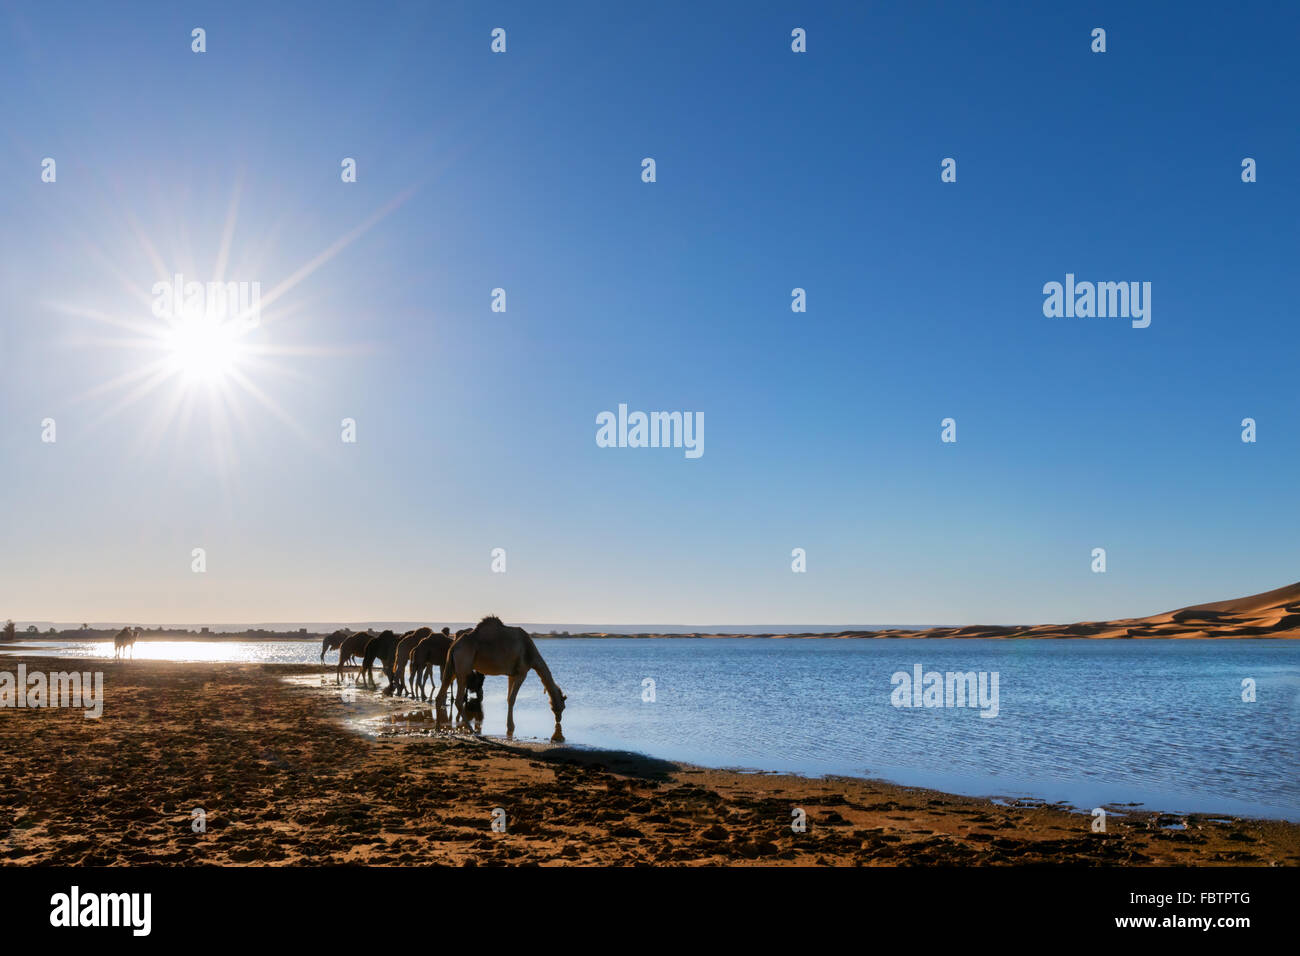 Dromedaries drink water at a rain-filled lake at the sand dunes of Erg Chebbi, Merzouga, Morocco. - Stock Image